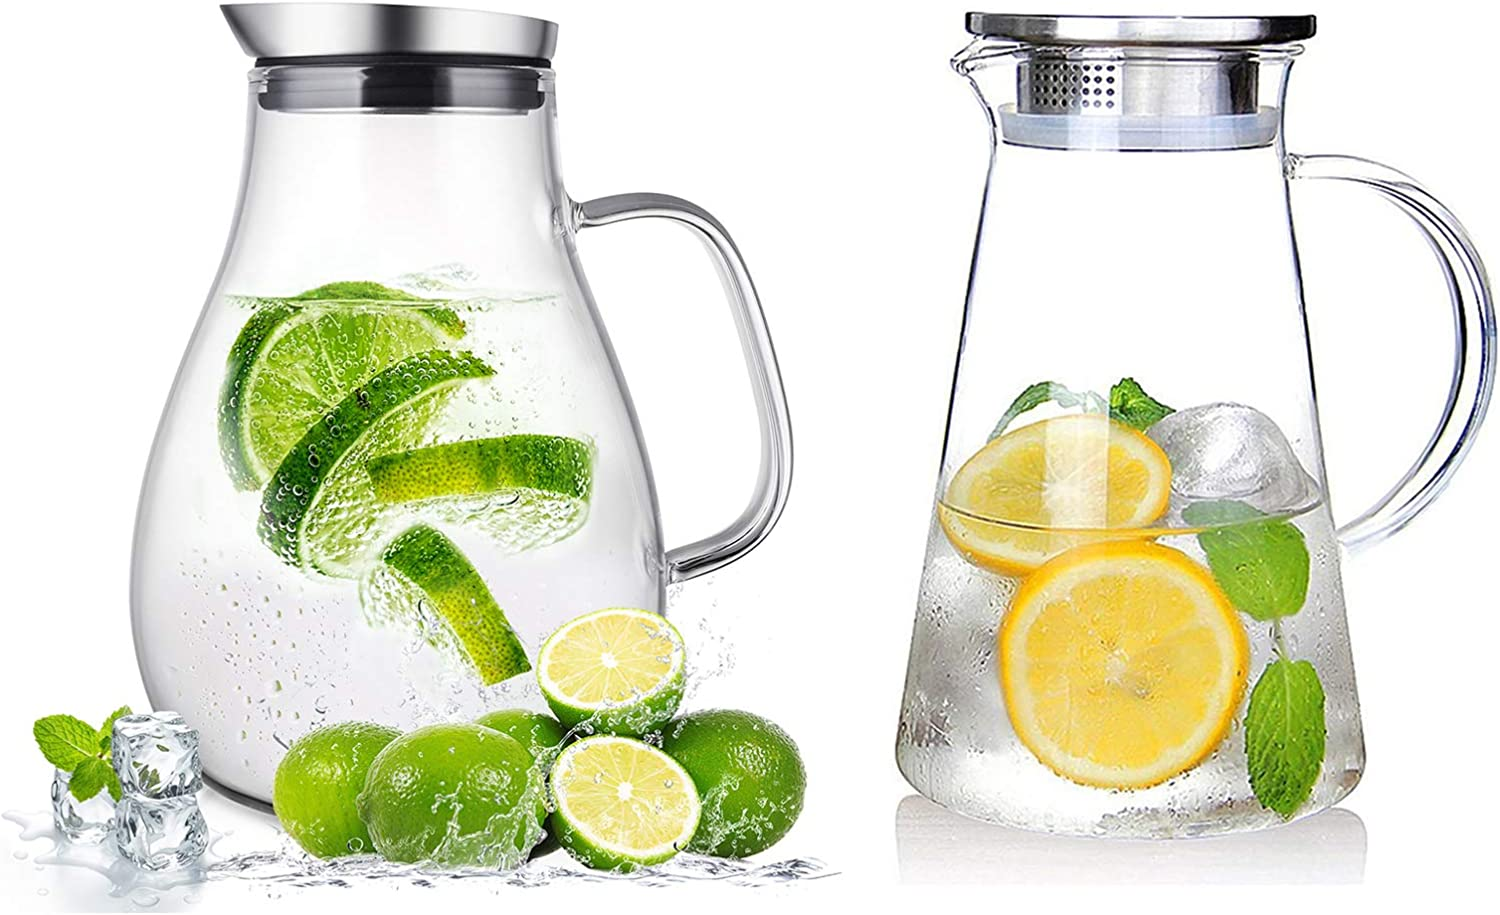 SUSTEAS 2.0 Liter 68 Ounces Glass Pitcher With Lid, Water Jug for Homemade Beverage